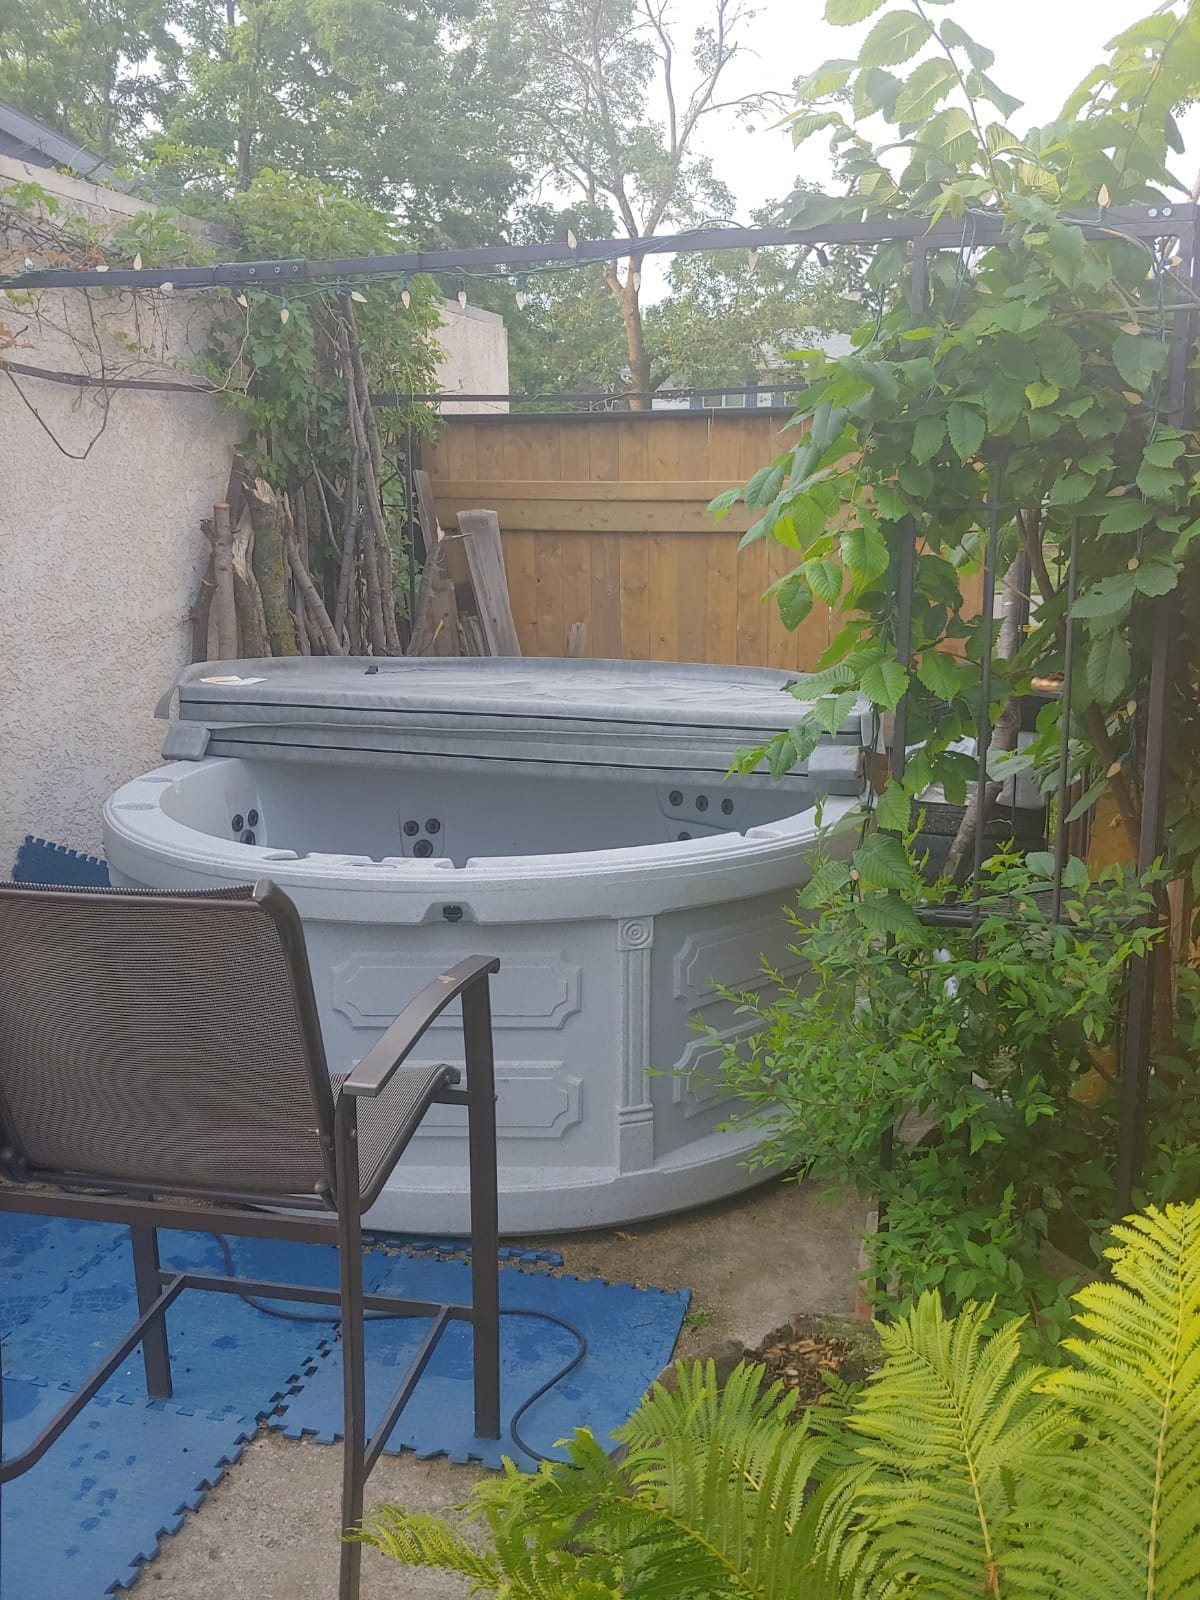 Rent-a-hot-tub-Beausejour-Manitoba-The-Funky-Keg